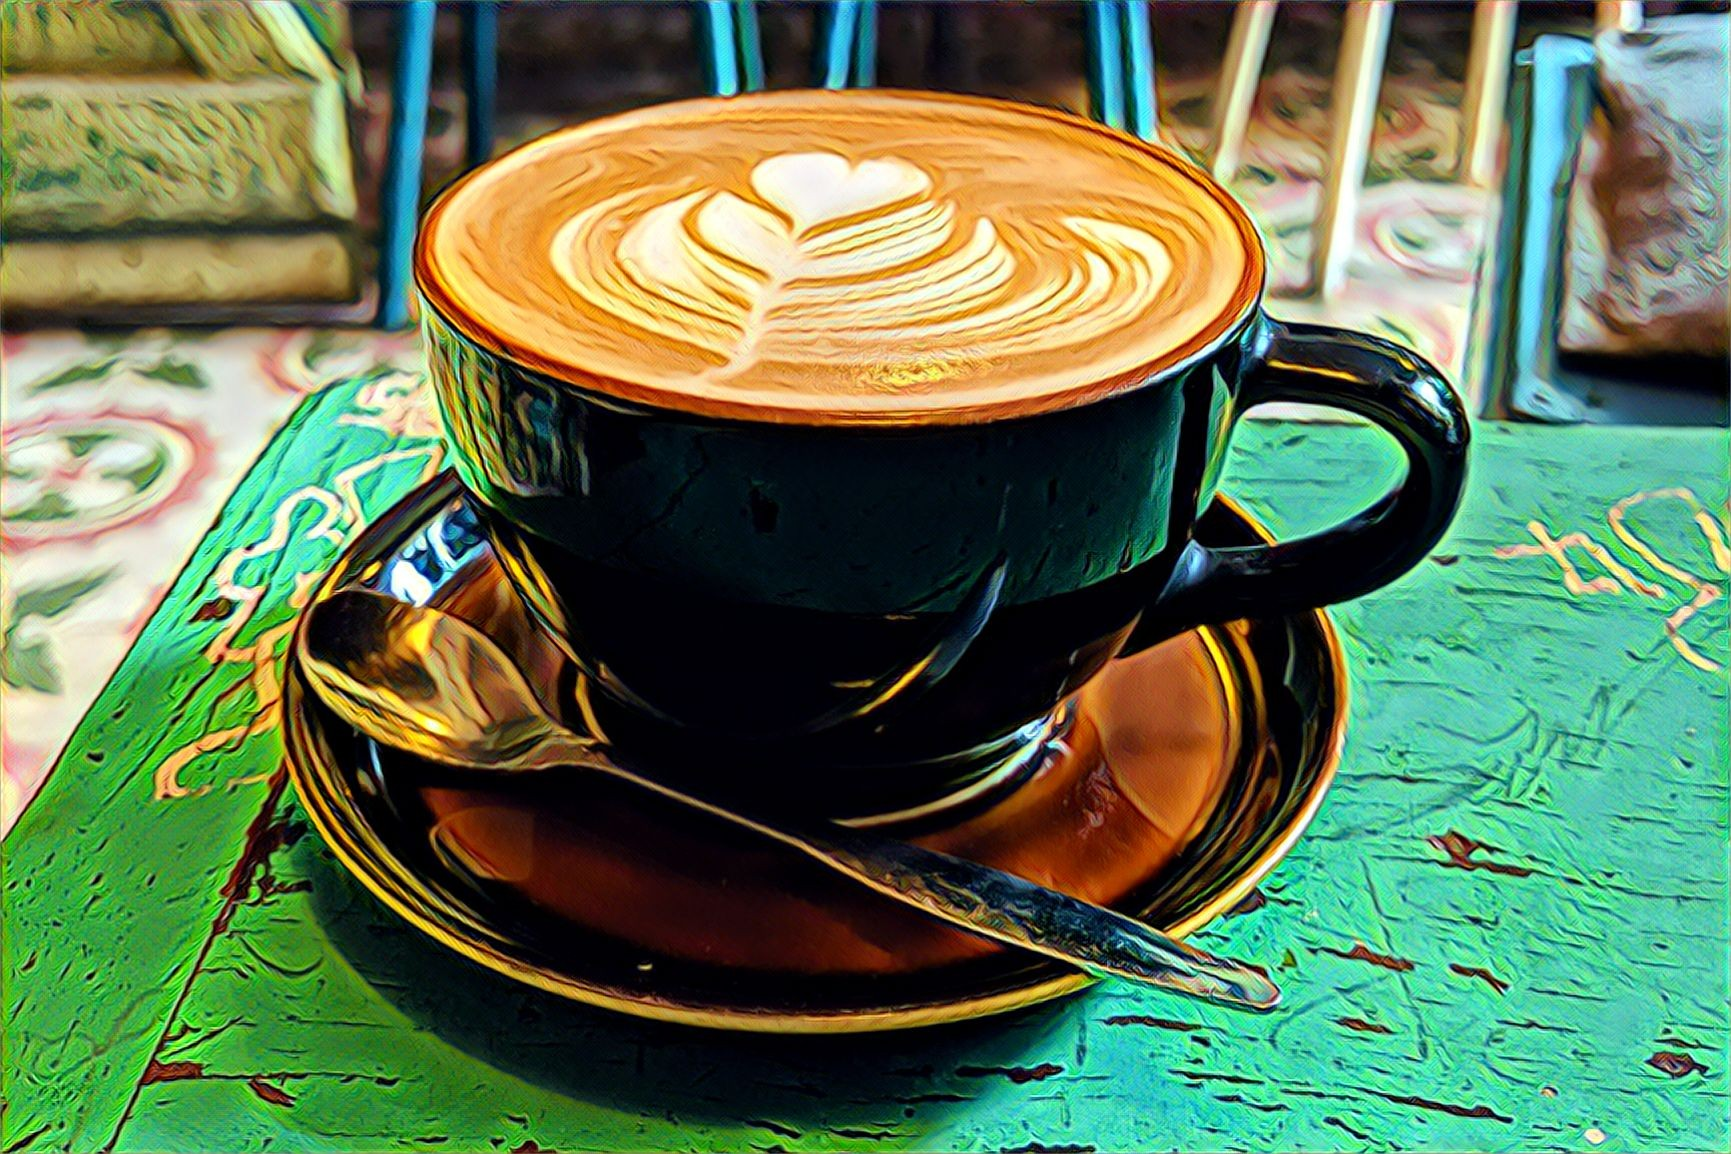 Read more about the article The Complete Guide To Cafes In Dalat, Vietnam